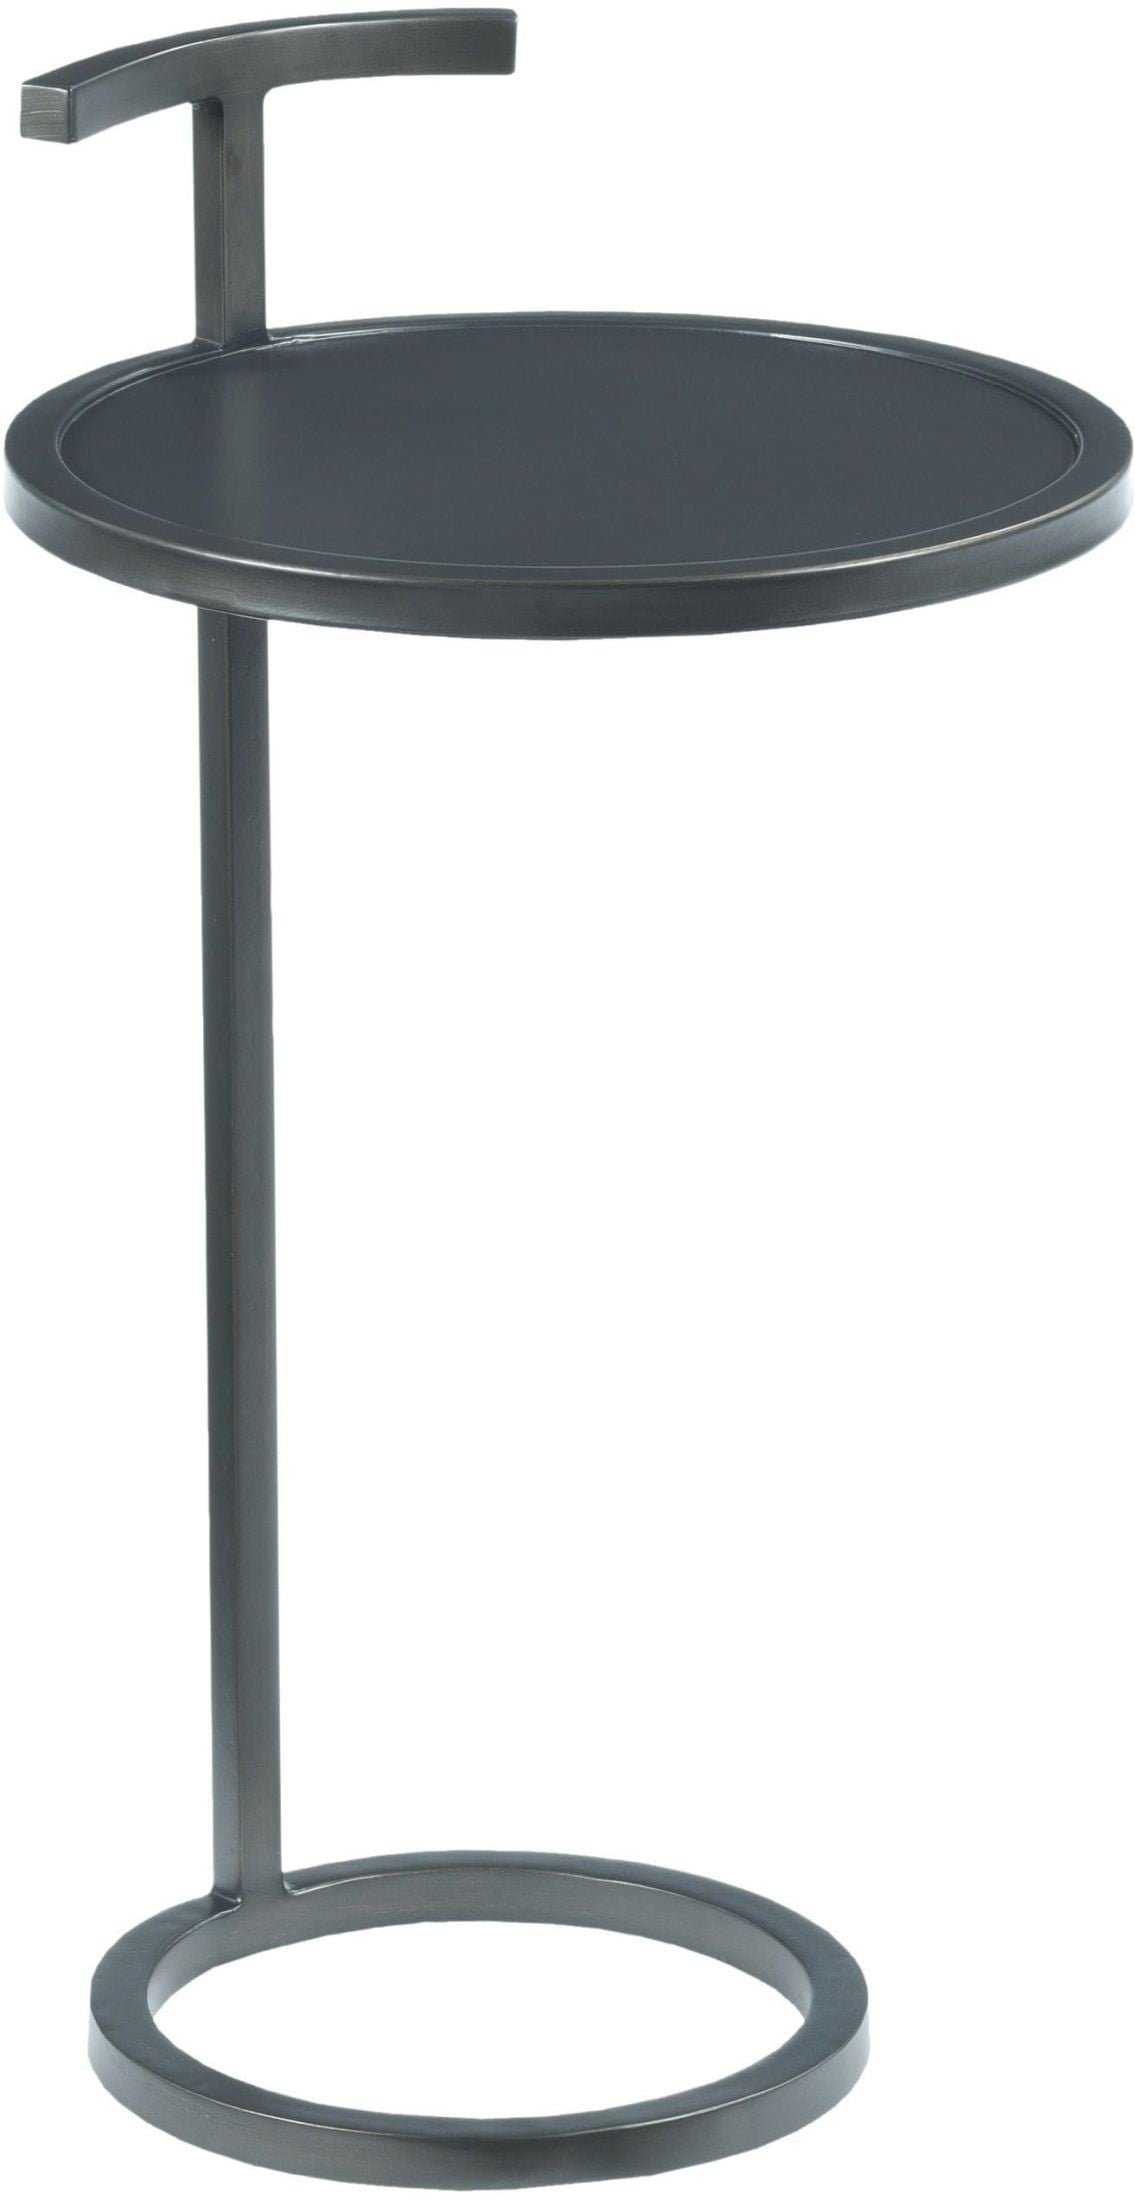 hidden treasures gray round accent table from hammary coleman acrylic lucite house decorations nesting tables mirror night drawer cabinet parasol pier one counter stools tall